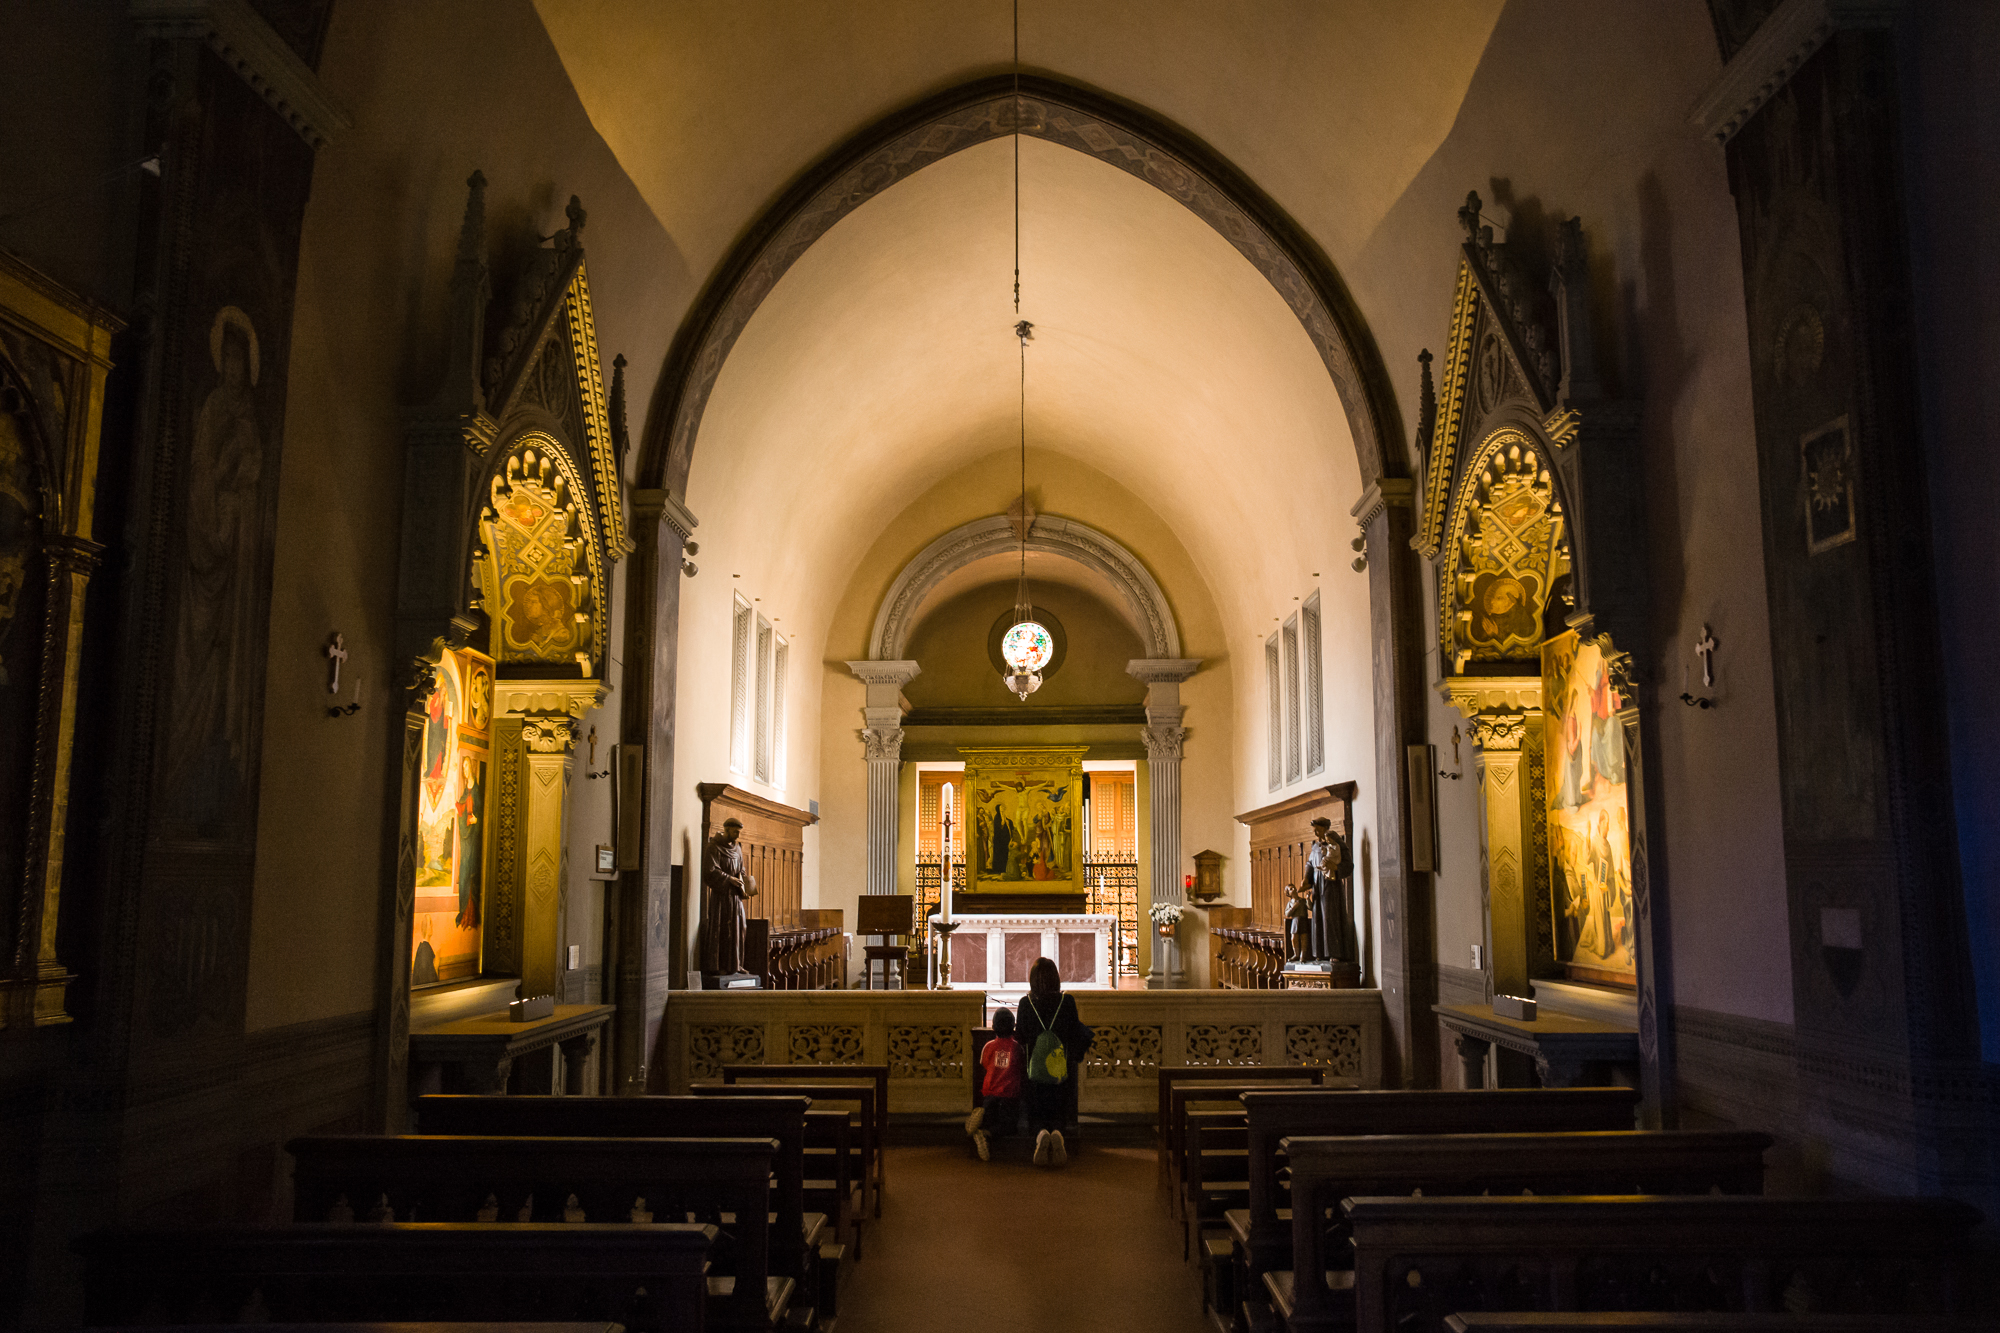 Praying in the chapel